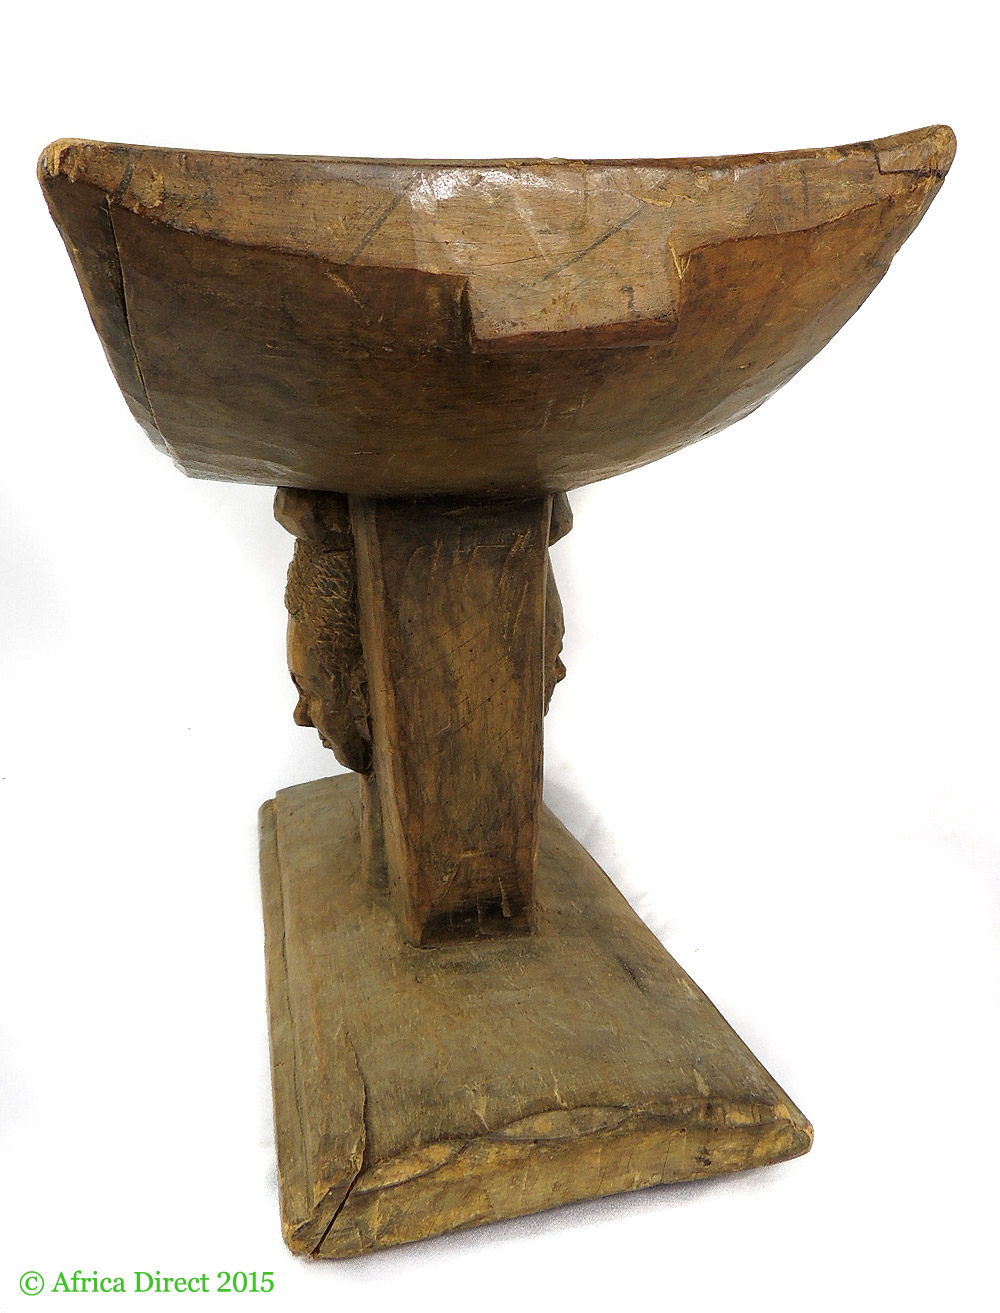 stool chair ghana fire pit table and chairs cover asante royal with face in base african art stools thrones artifacts